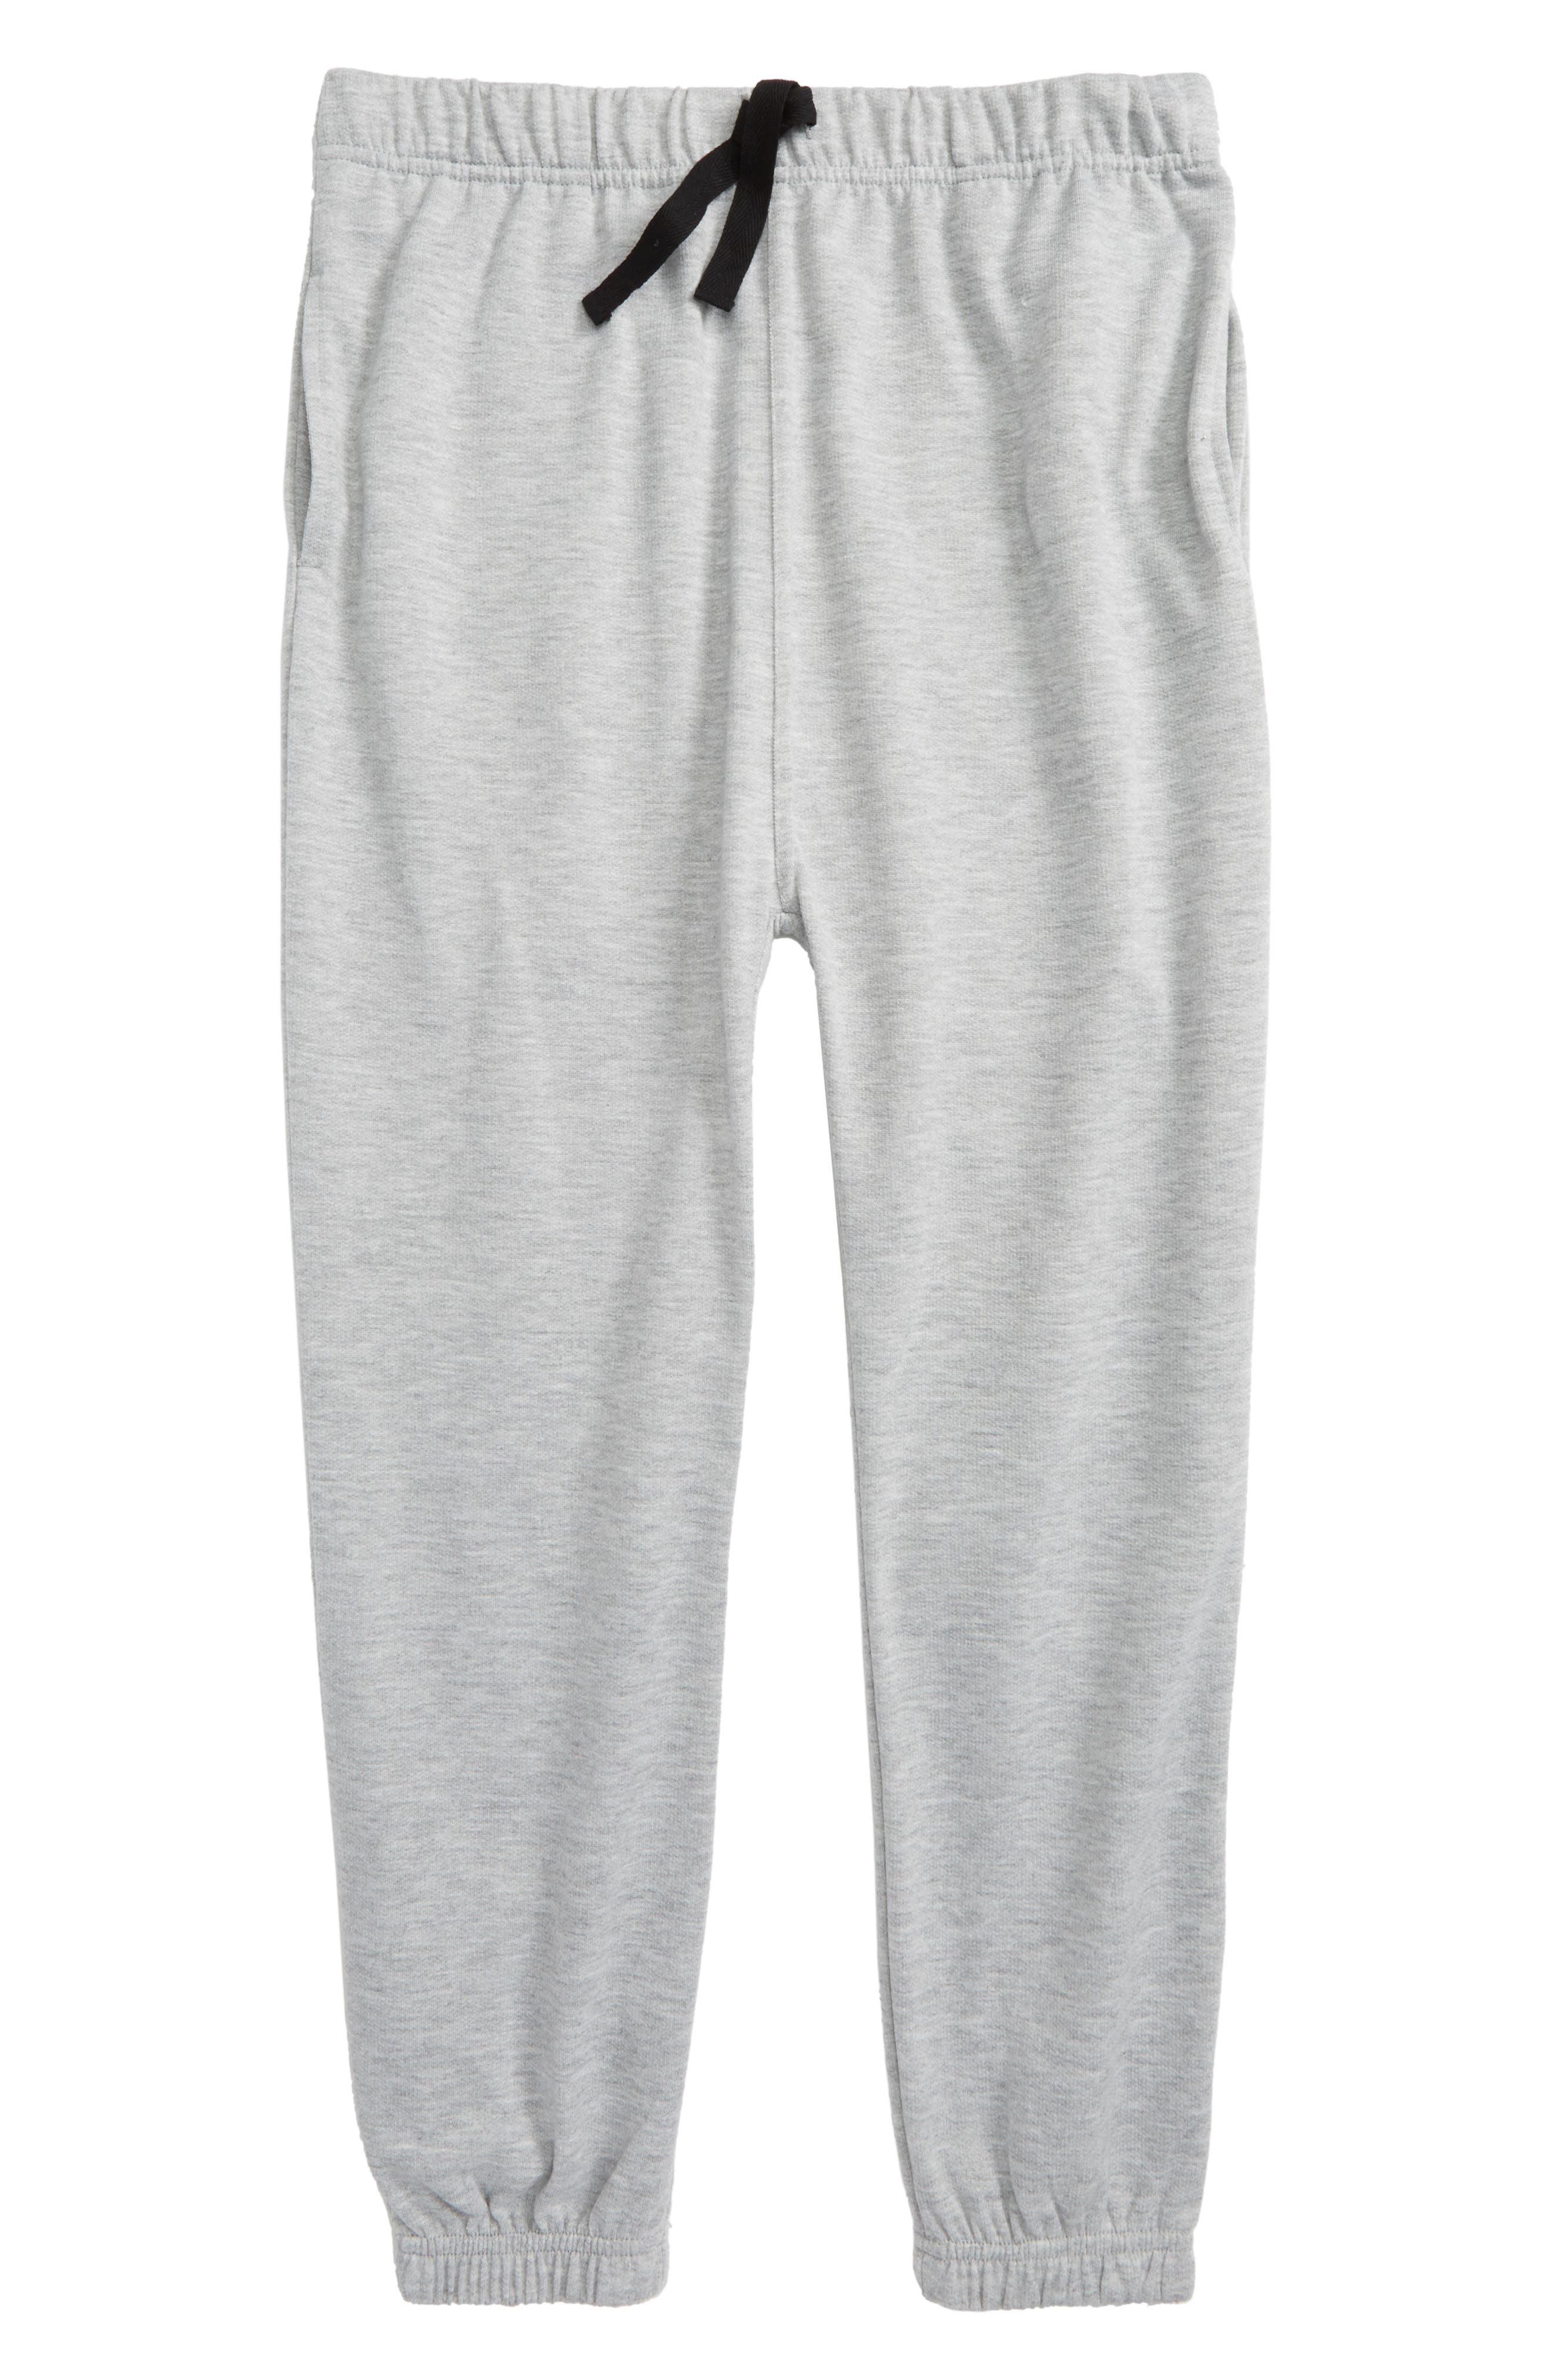 Jogger Pants,                             Main thumbnail 1, color,                             Grey Medium Heather